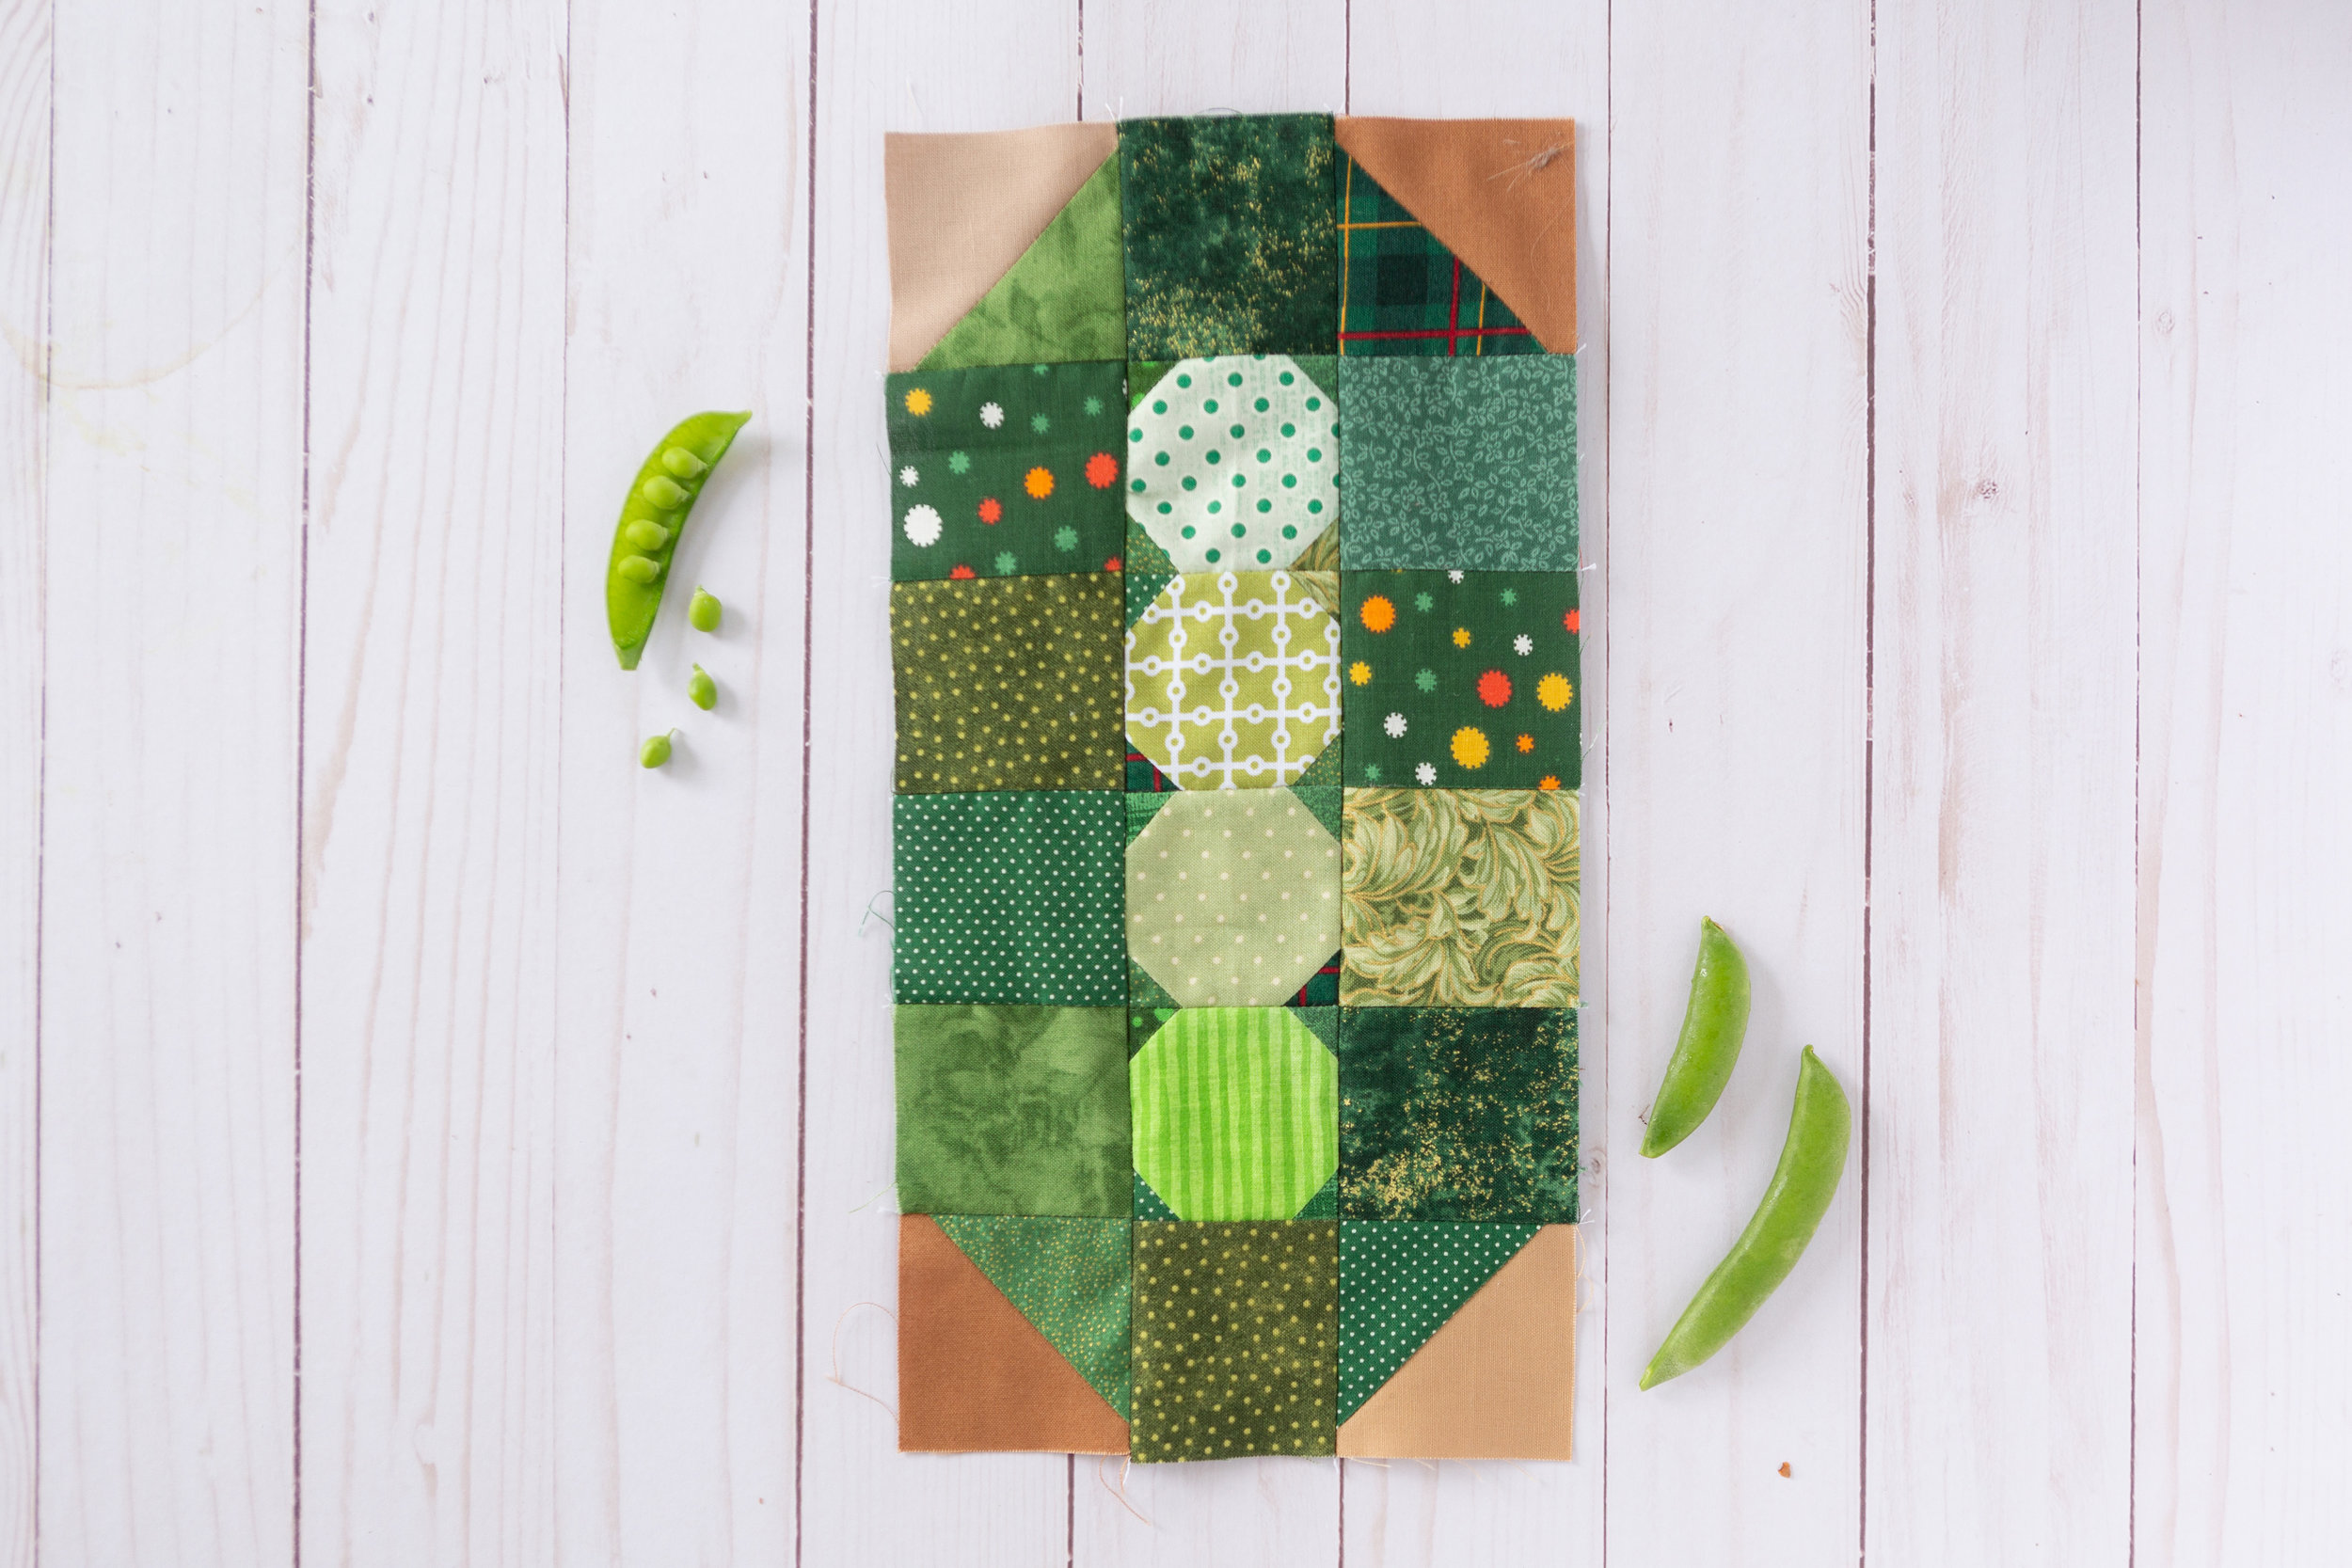 Peas in a Pod - a Veggie Patch Block by Katie Mae Quilts